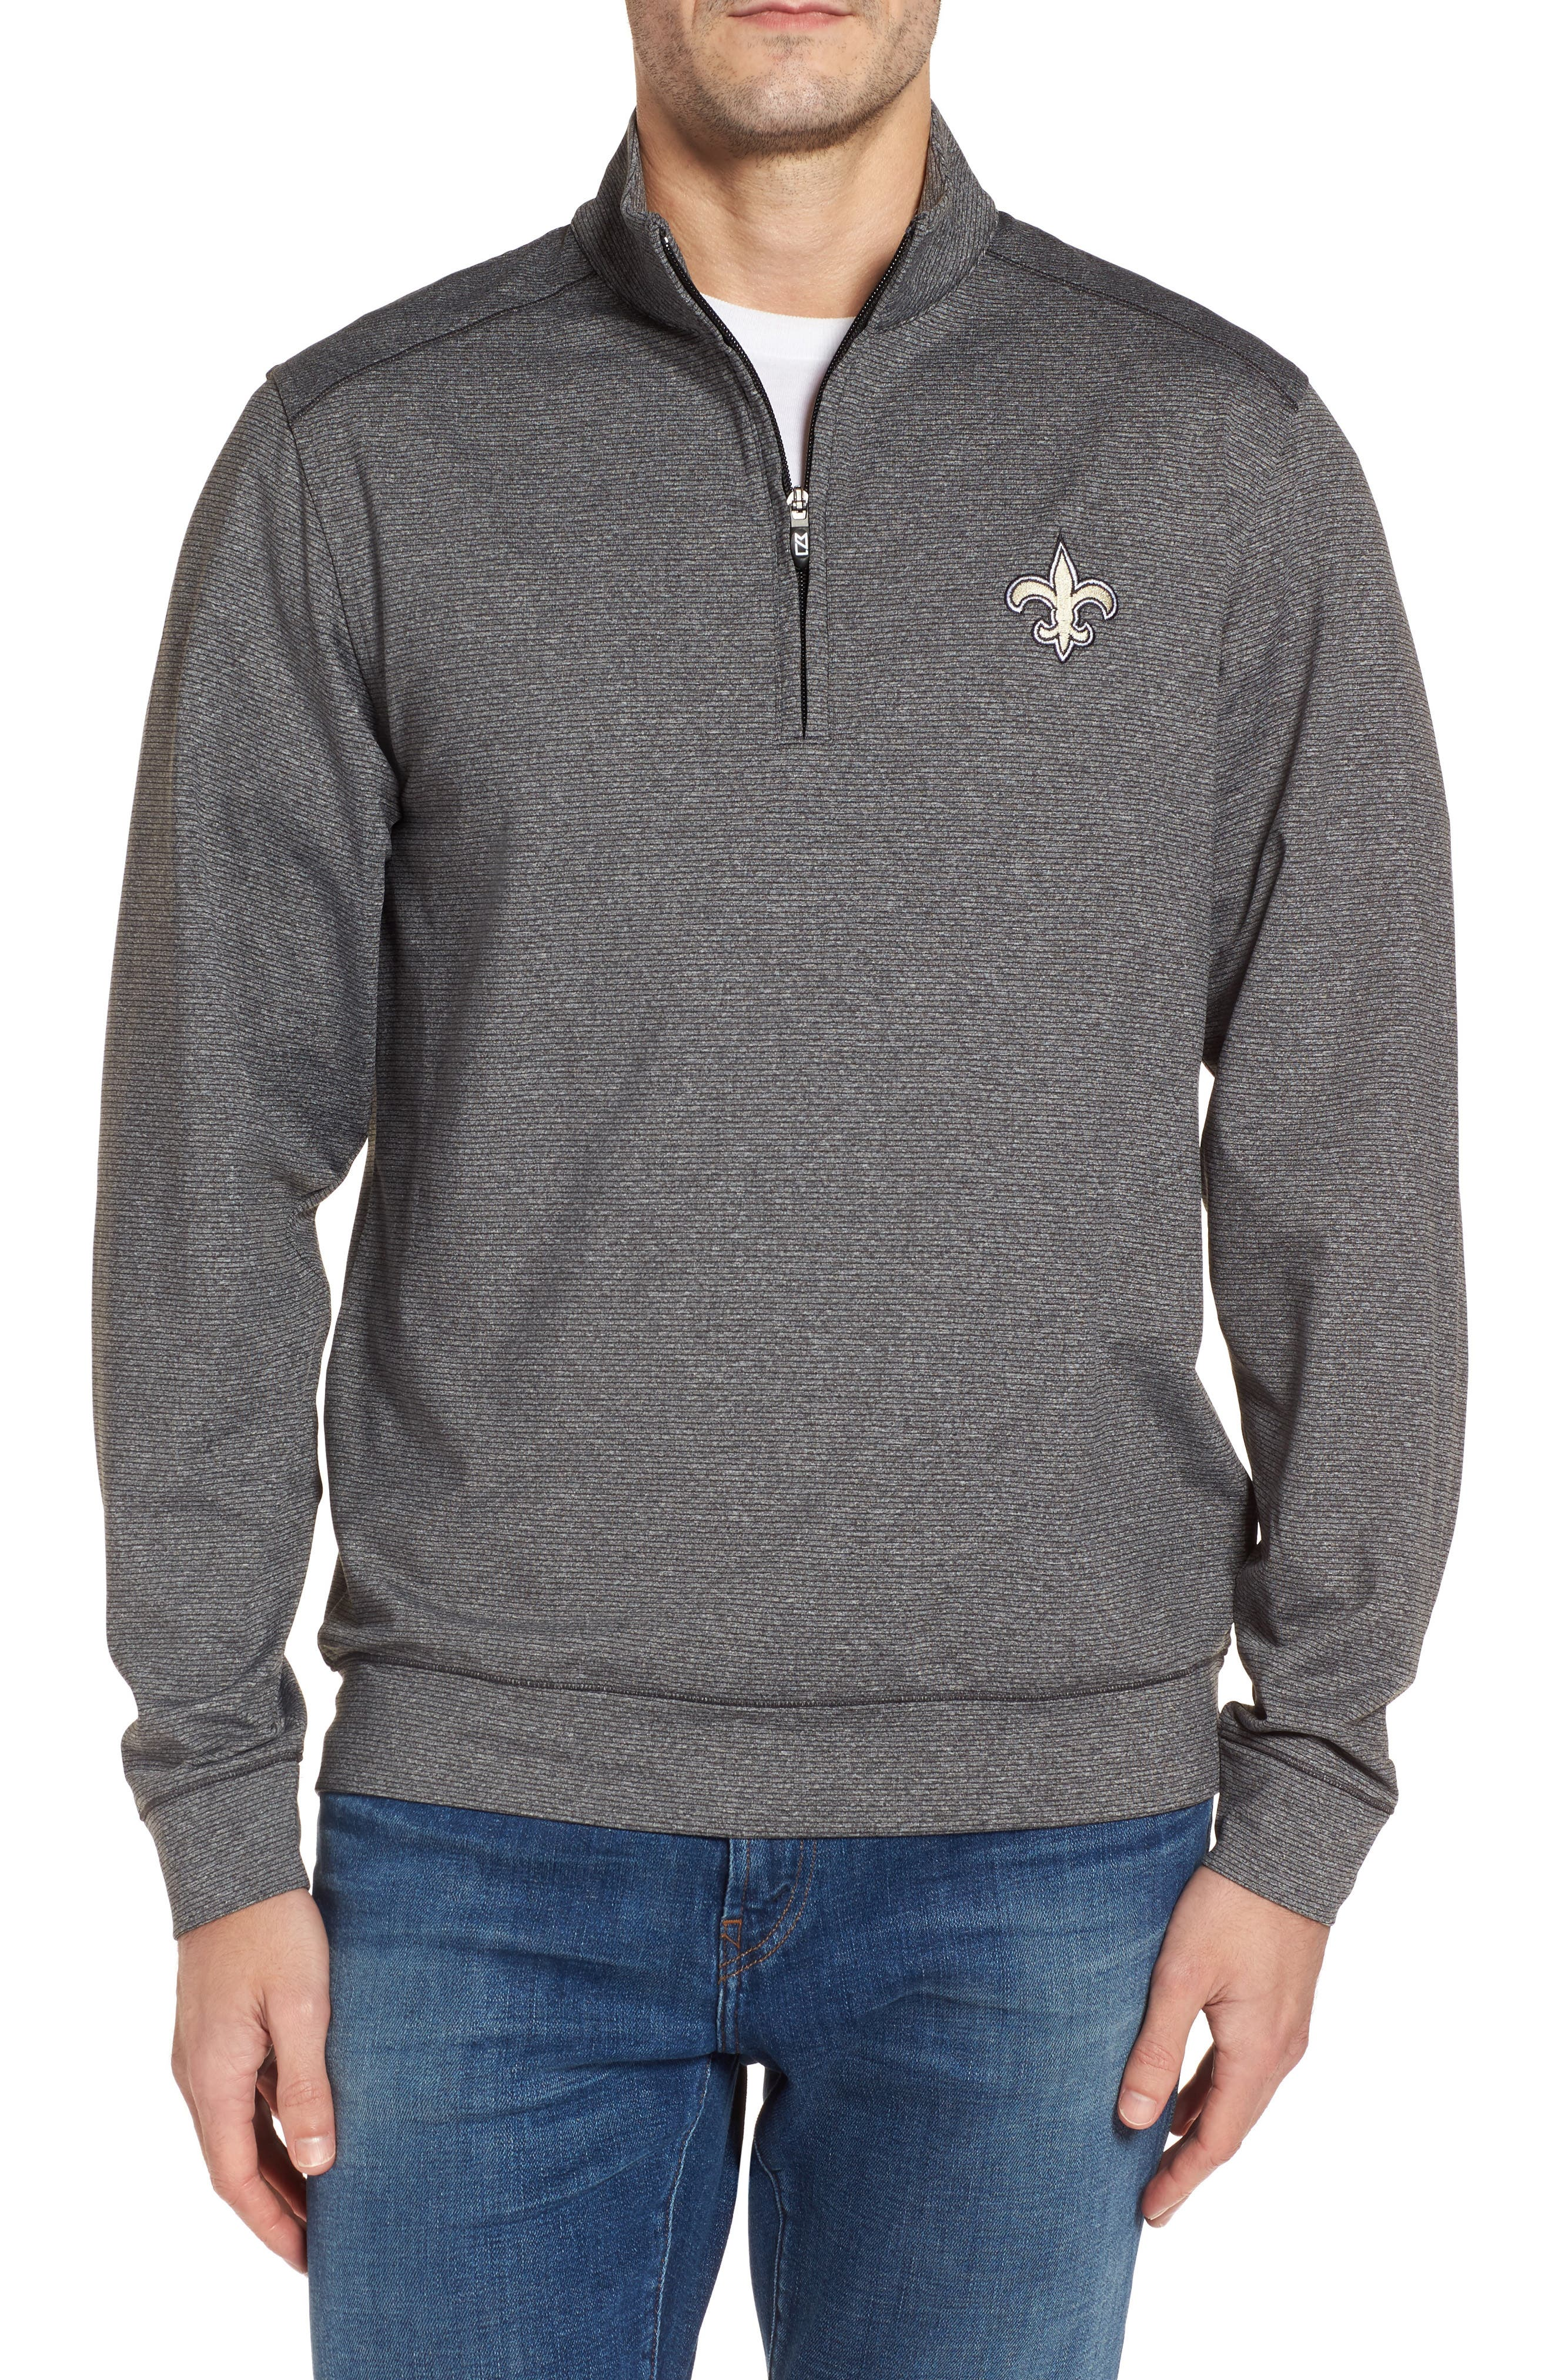 Shoreline - New Orleans Saints Half Zip Pullover,                         Main,                         color, 020